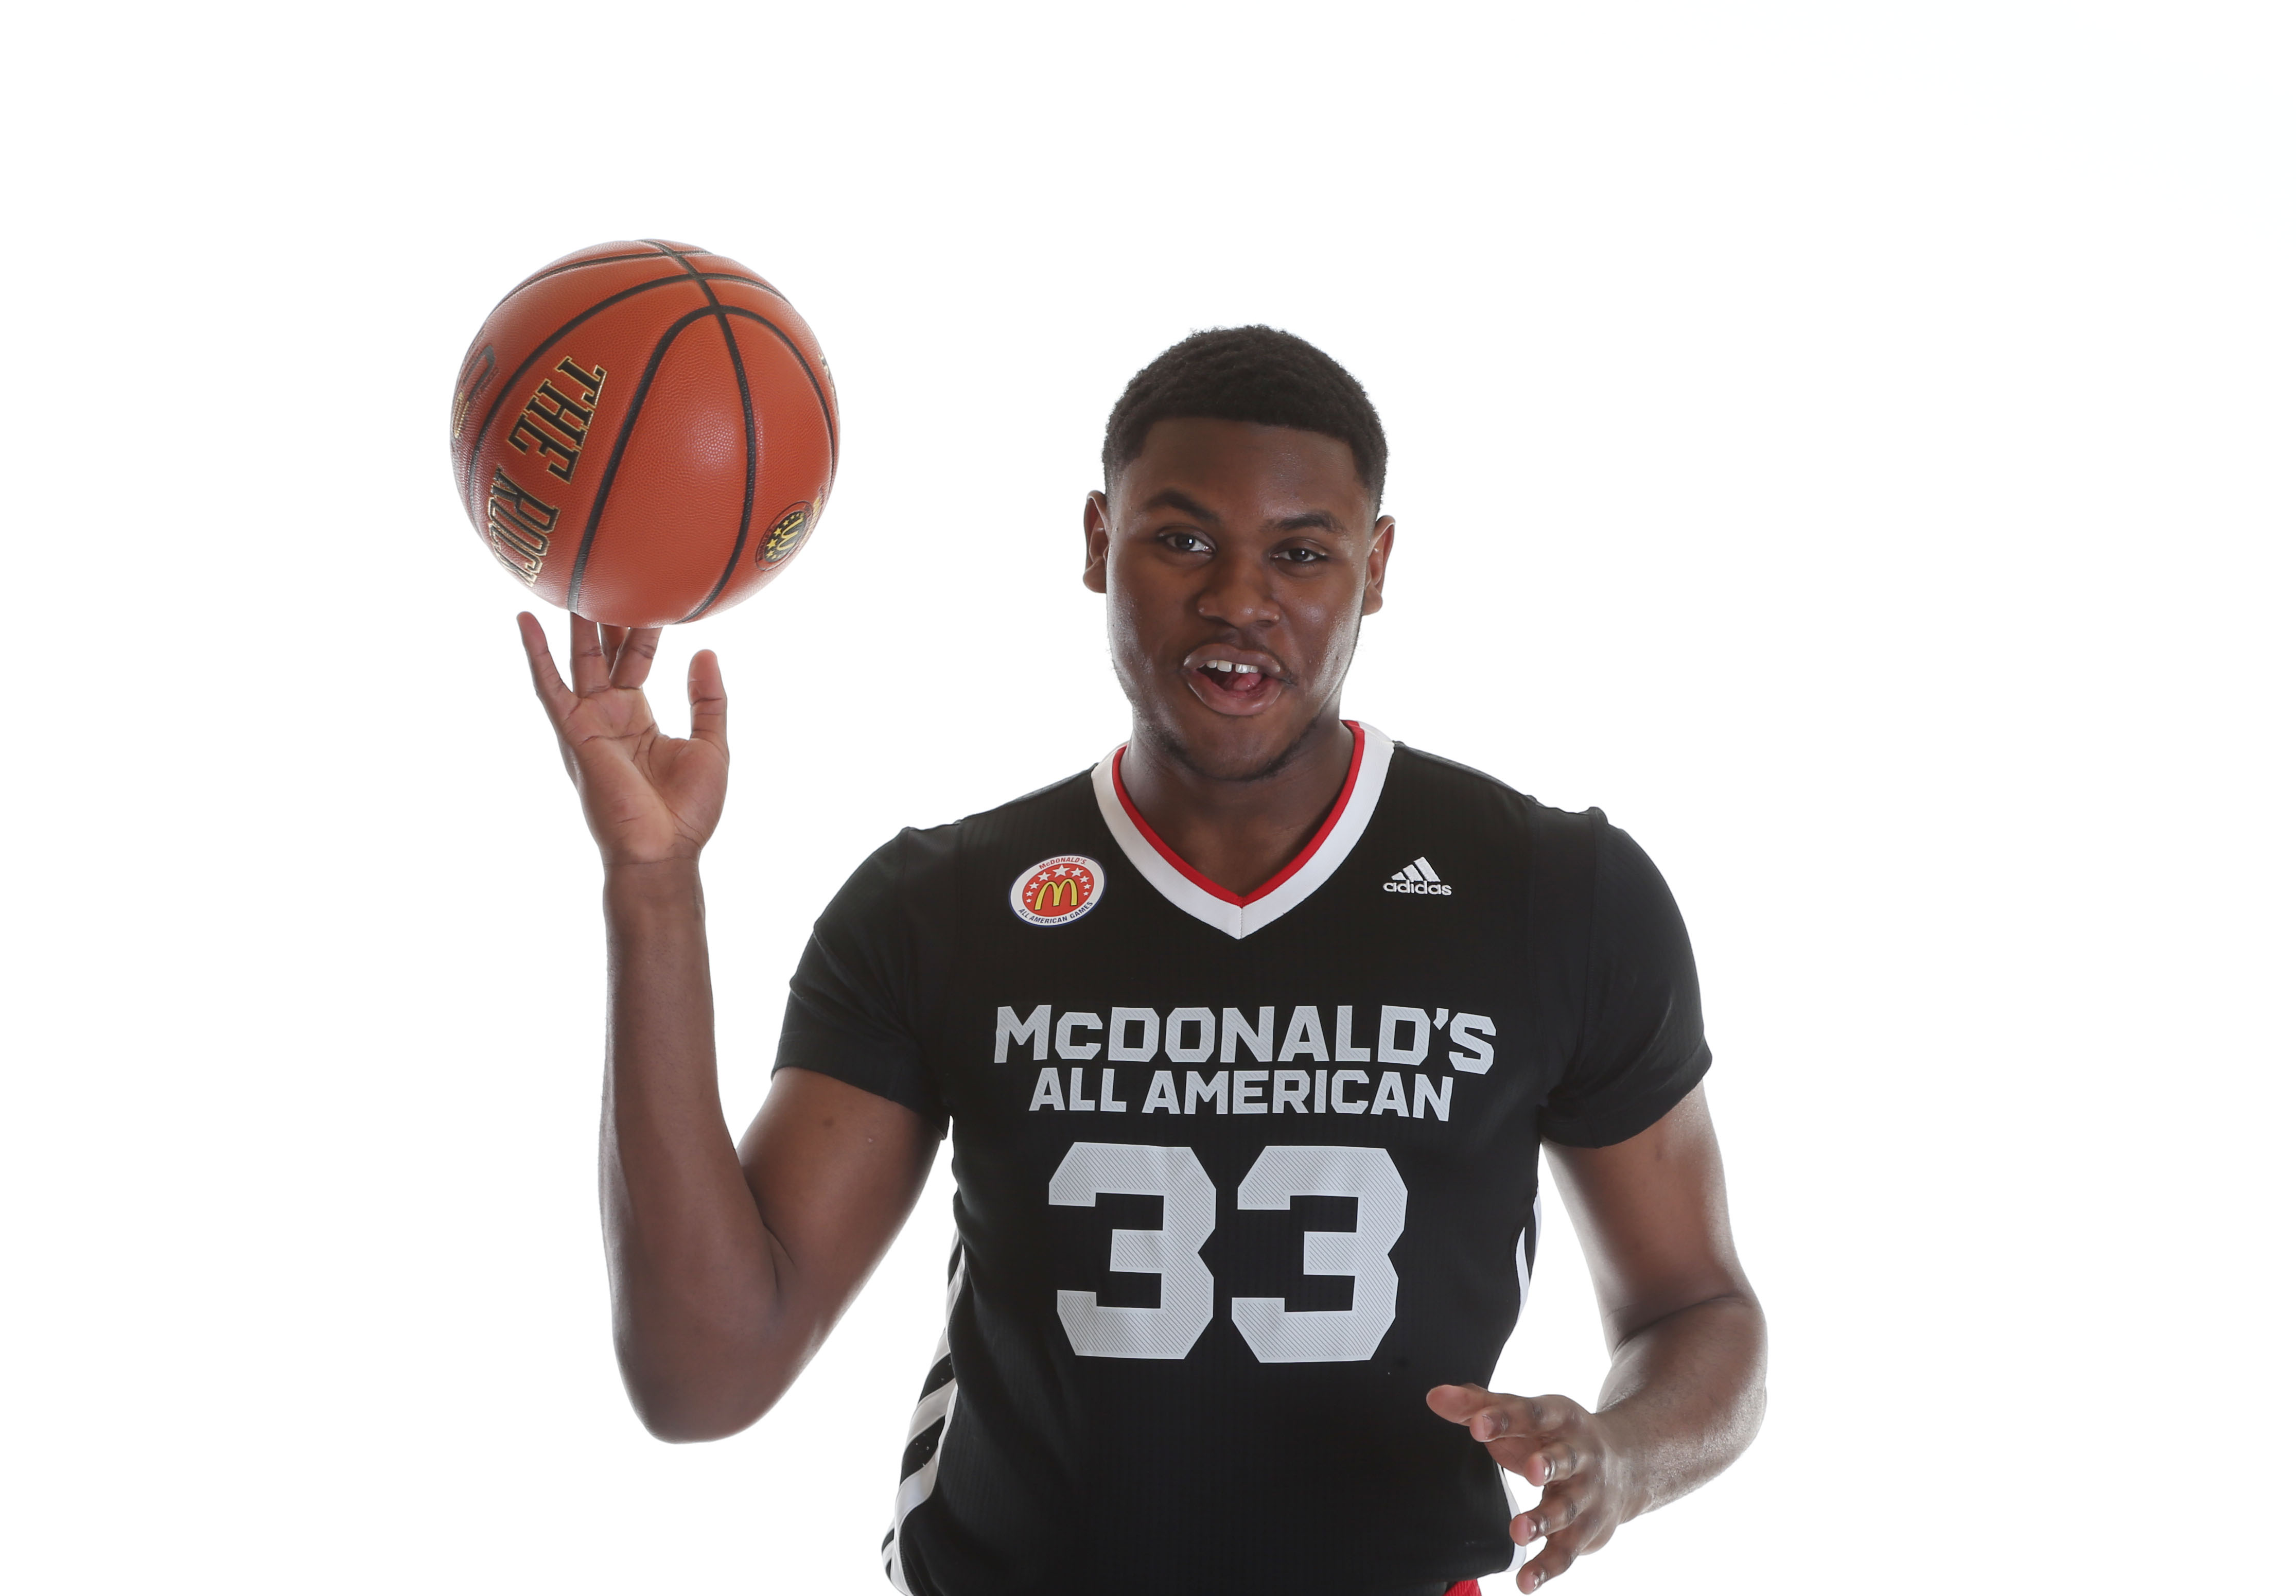 Diamond Stone poses during picture day at the McDonald's All American Game (Photo: Brian Spurlock, USA TODAY Sports)